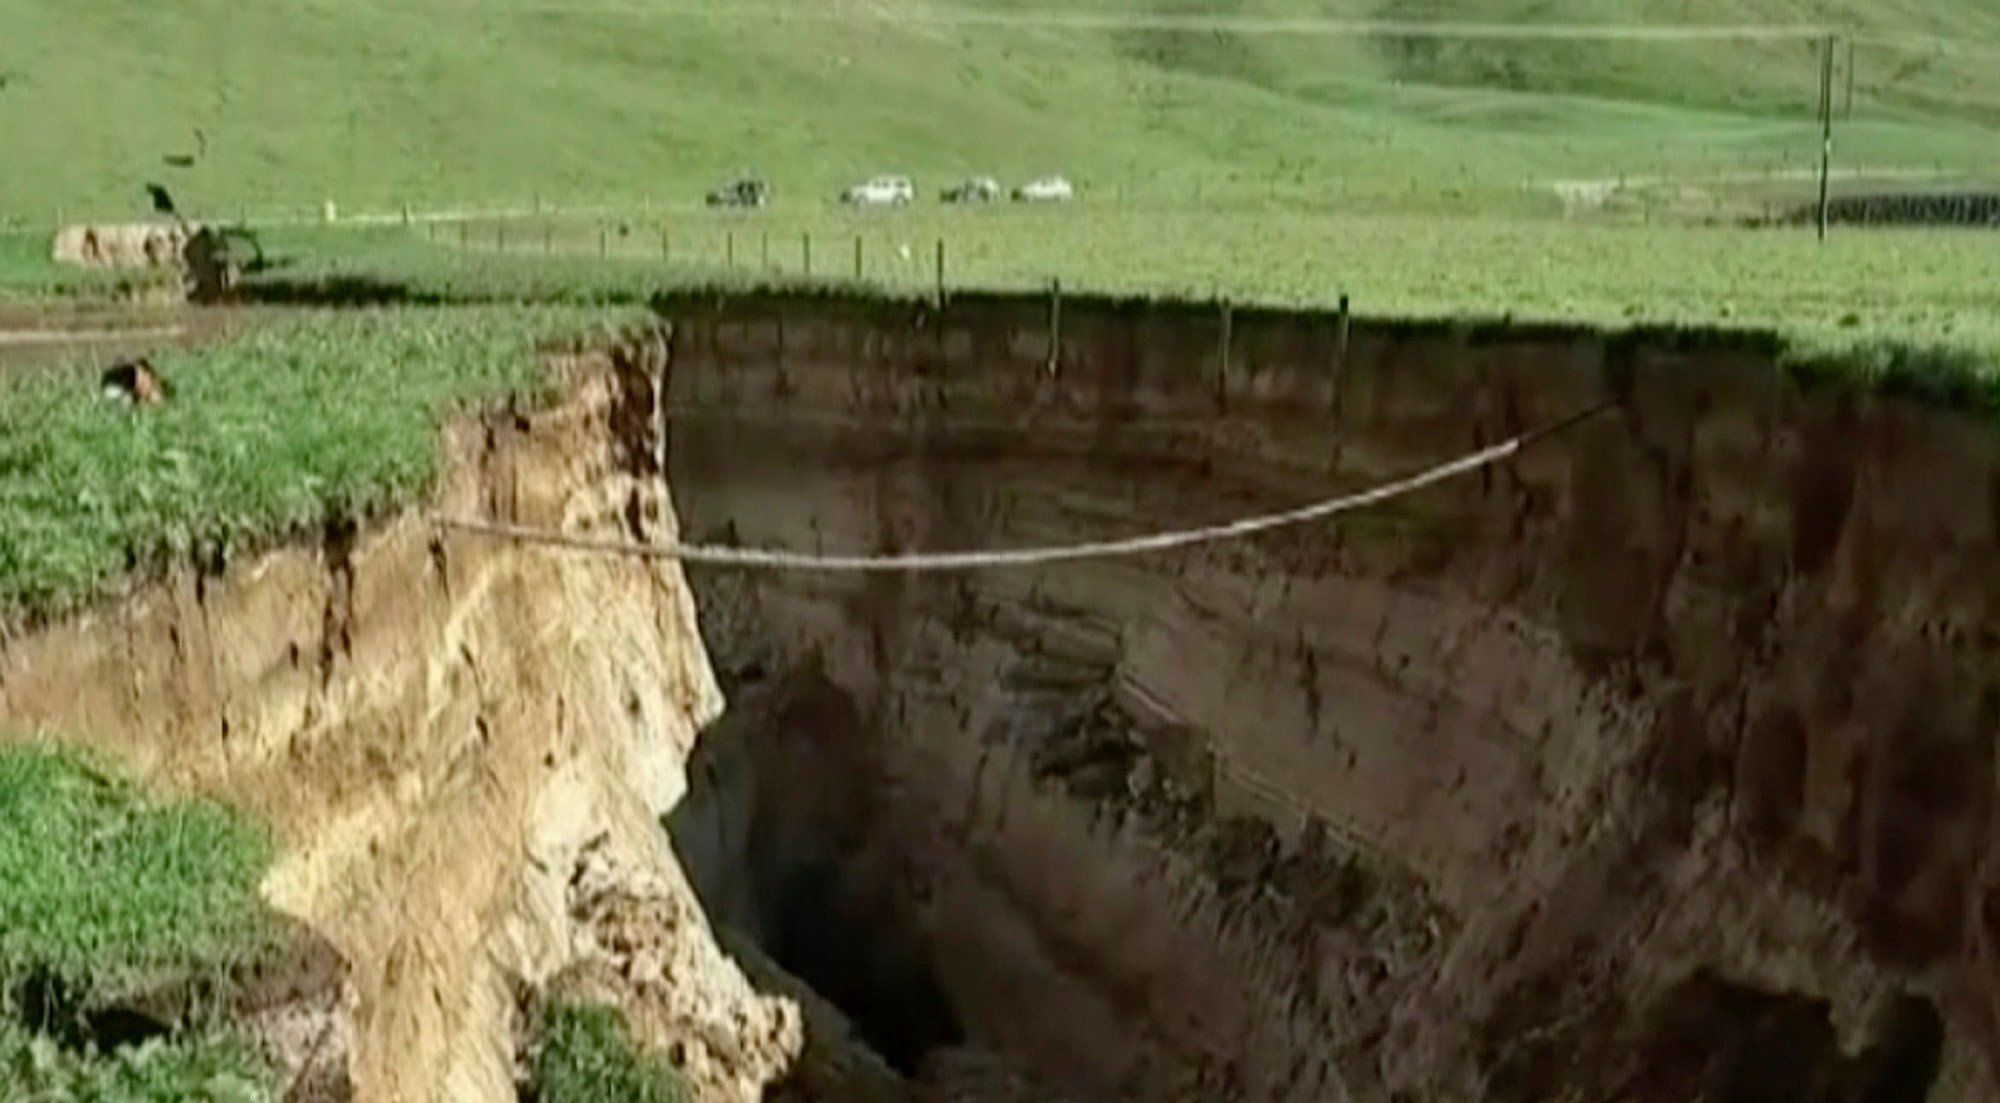 Sinkhole the size of two football fields opens up in New Zealand